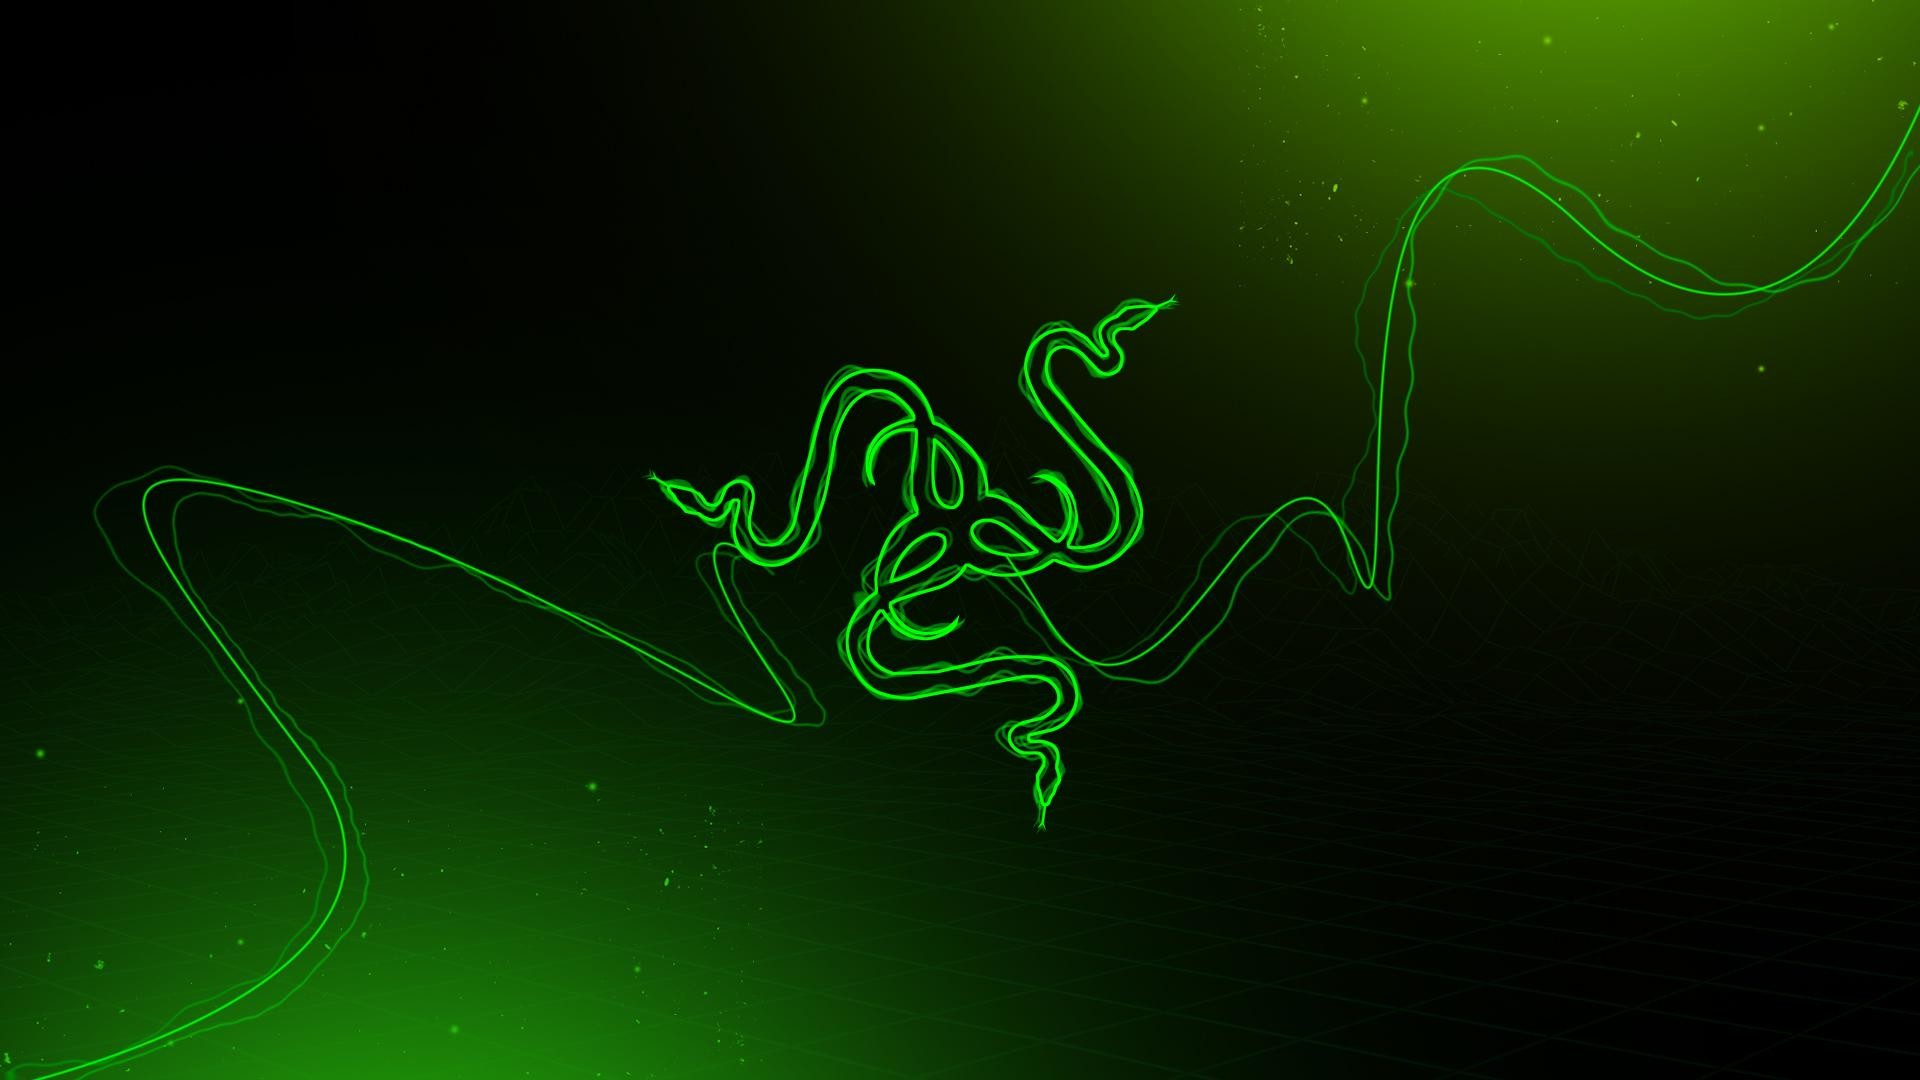 Original Razer wallpaper, feel free to use for your personal use.